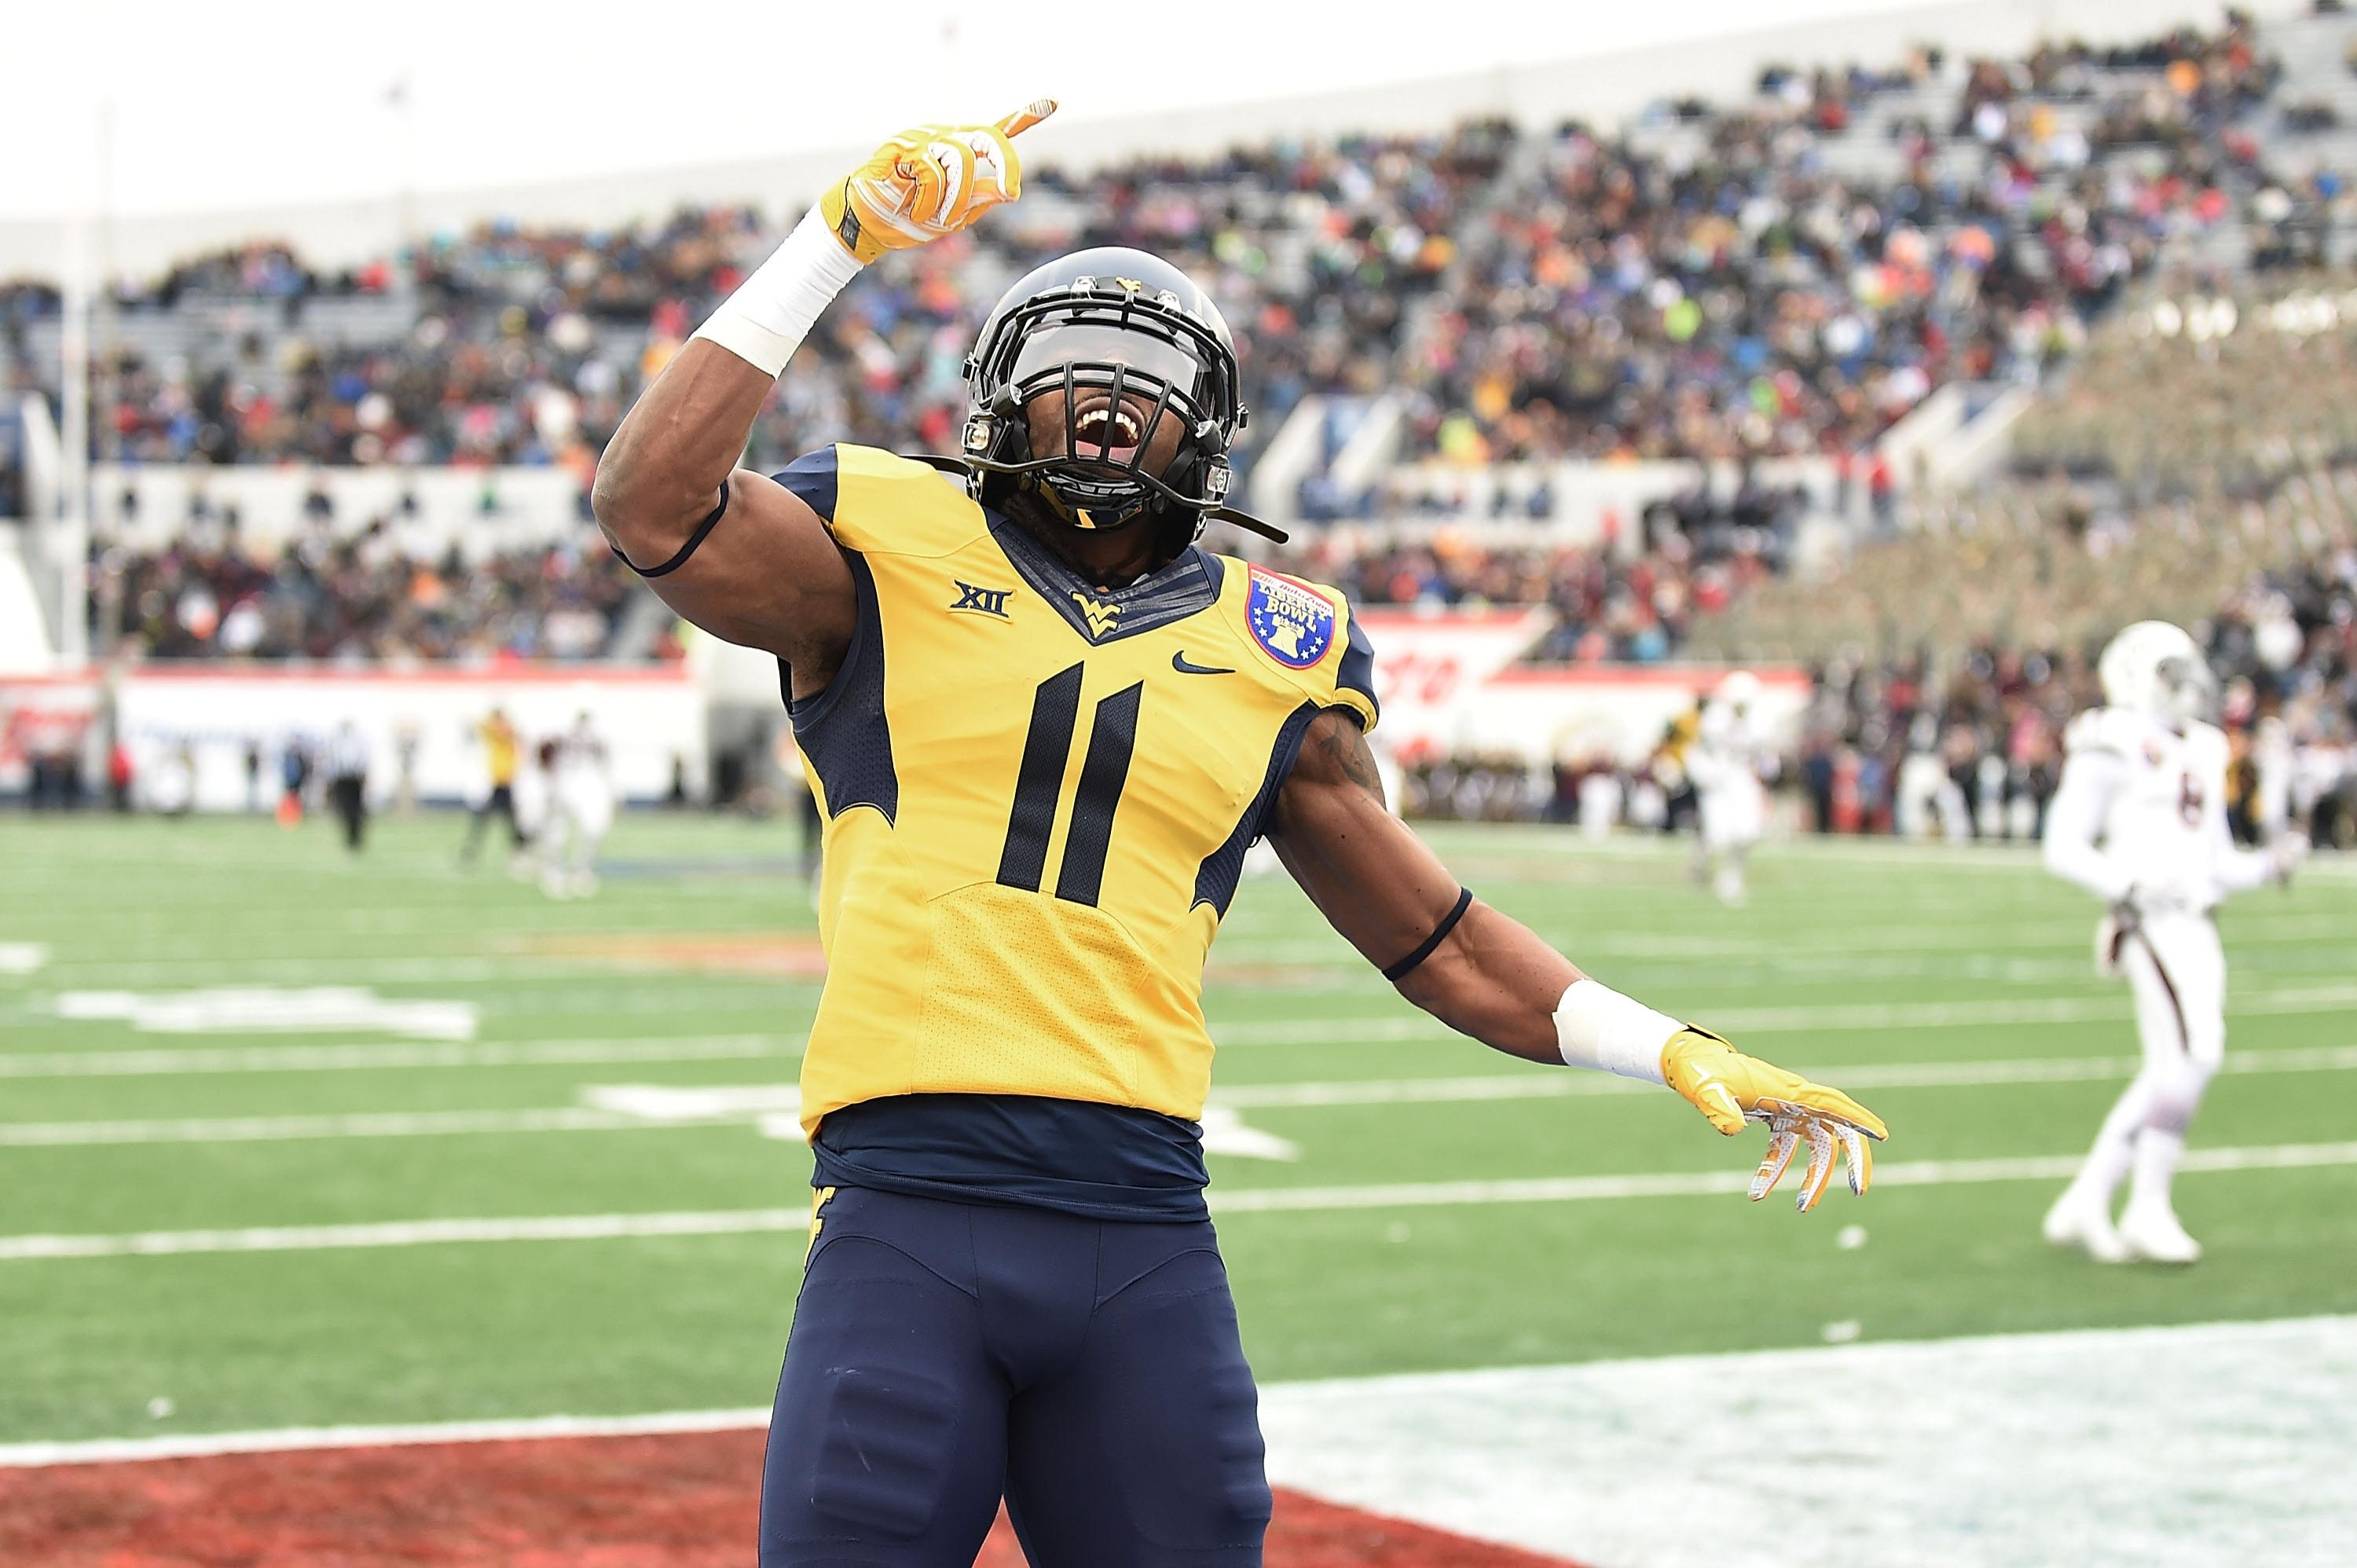 2015 NFL Rookie Predictions: Kevin White may be next Beckham